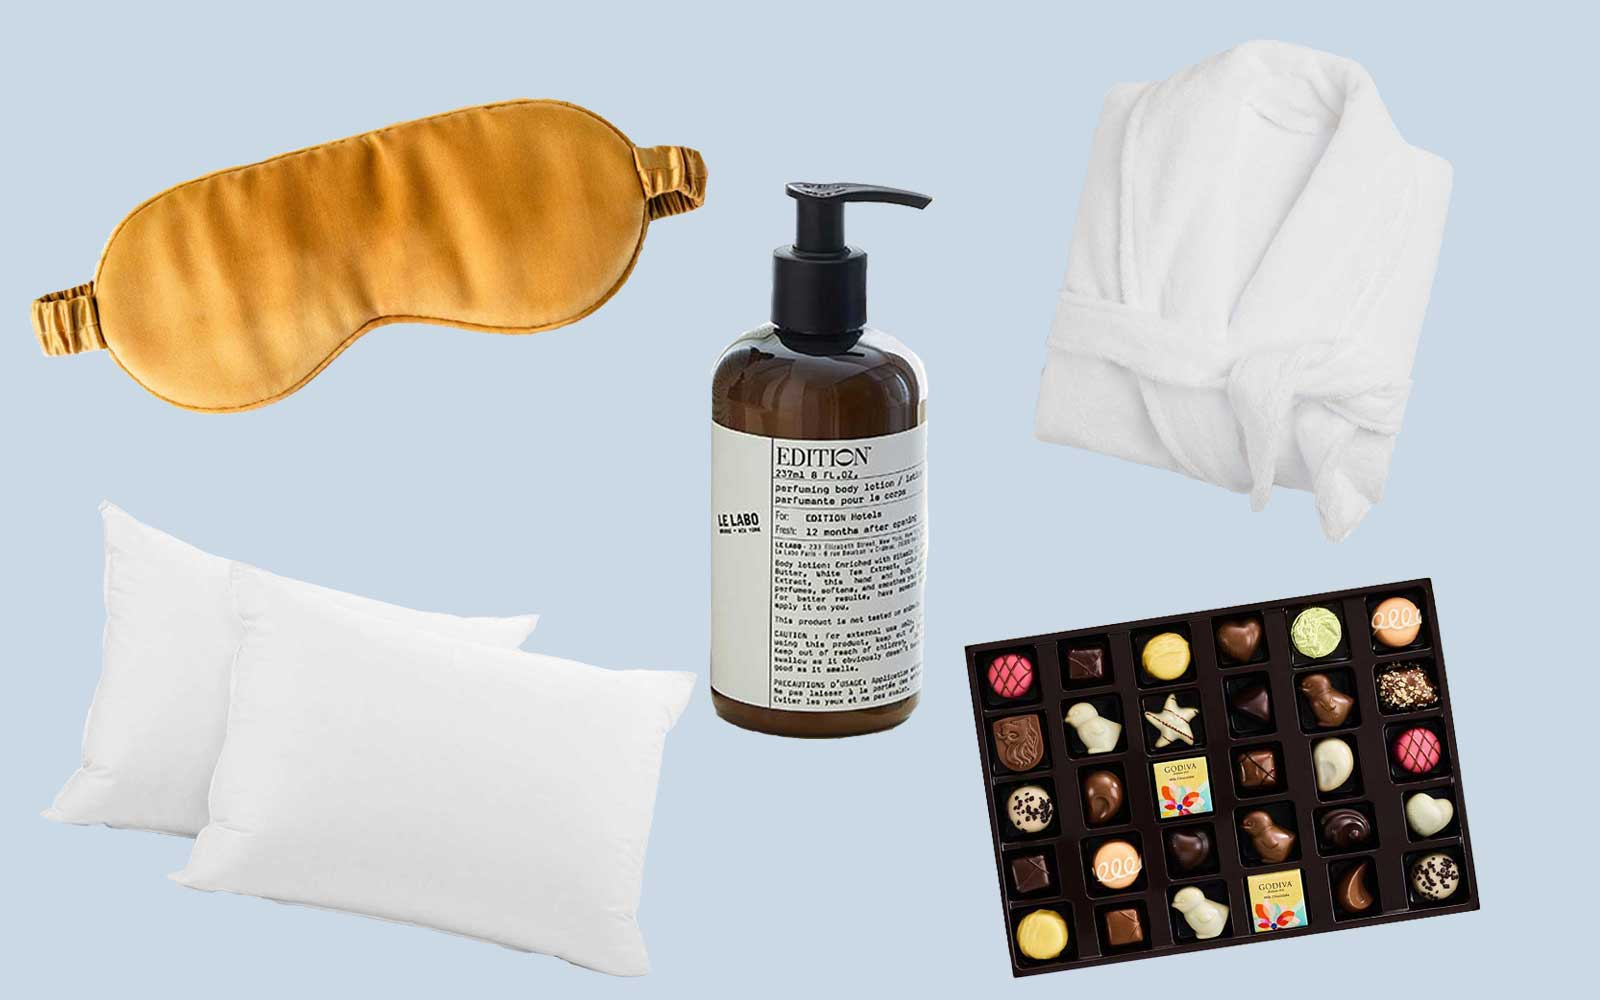 Gold sleep mask, white pillows, white robe, assorted chocolate box, and soap bottle with pump on blue background